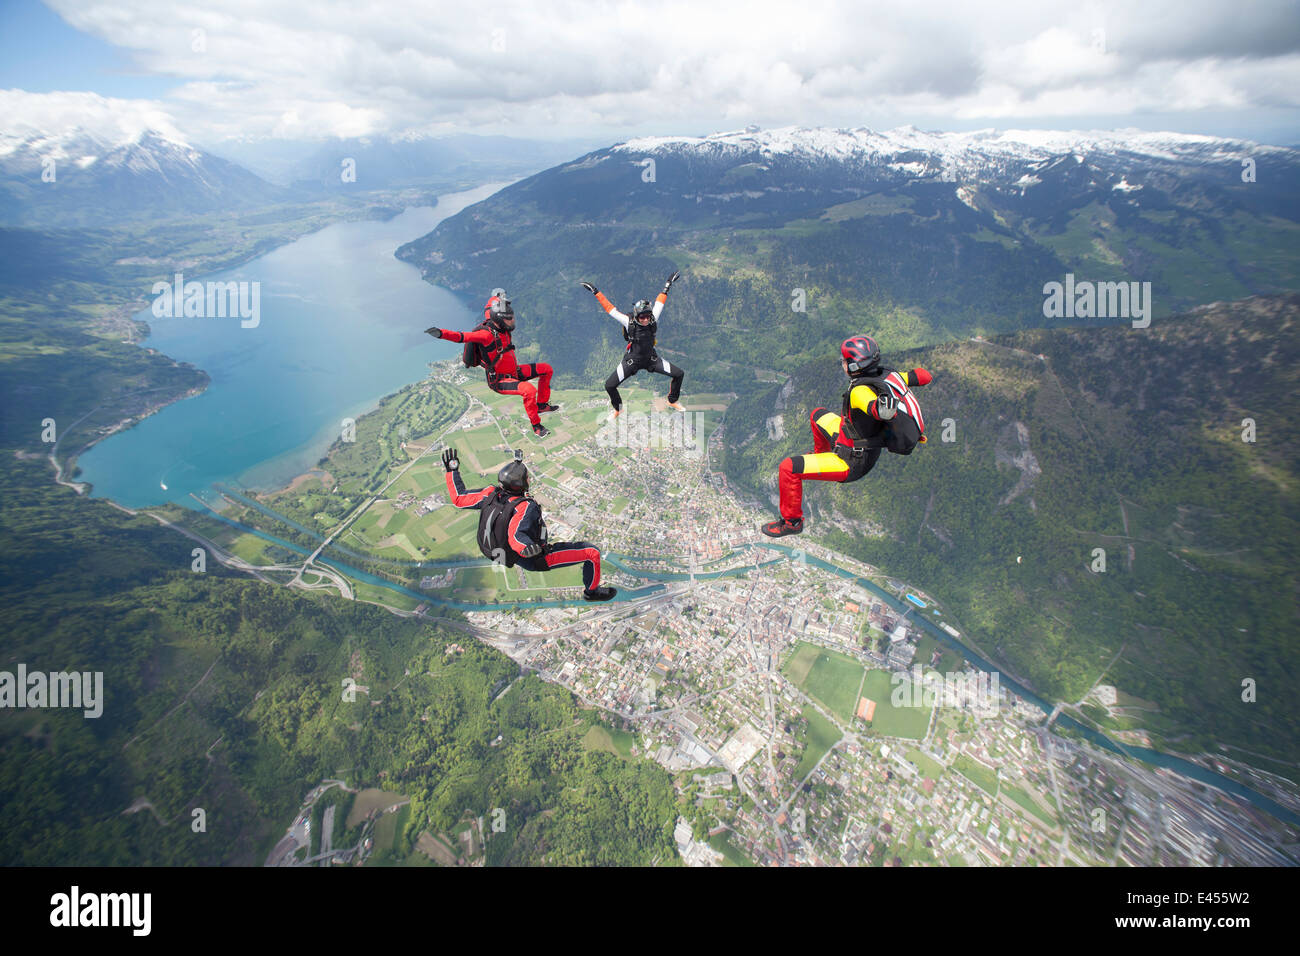 Team of four skydivers in formation over Interlaken, Berne, Switzerland - Stock Image